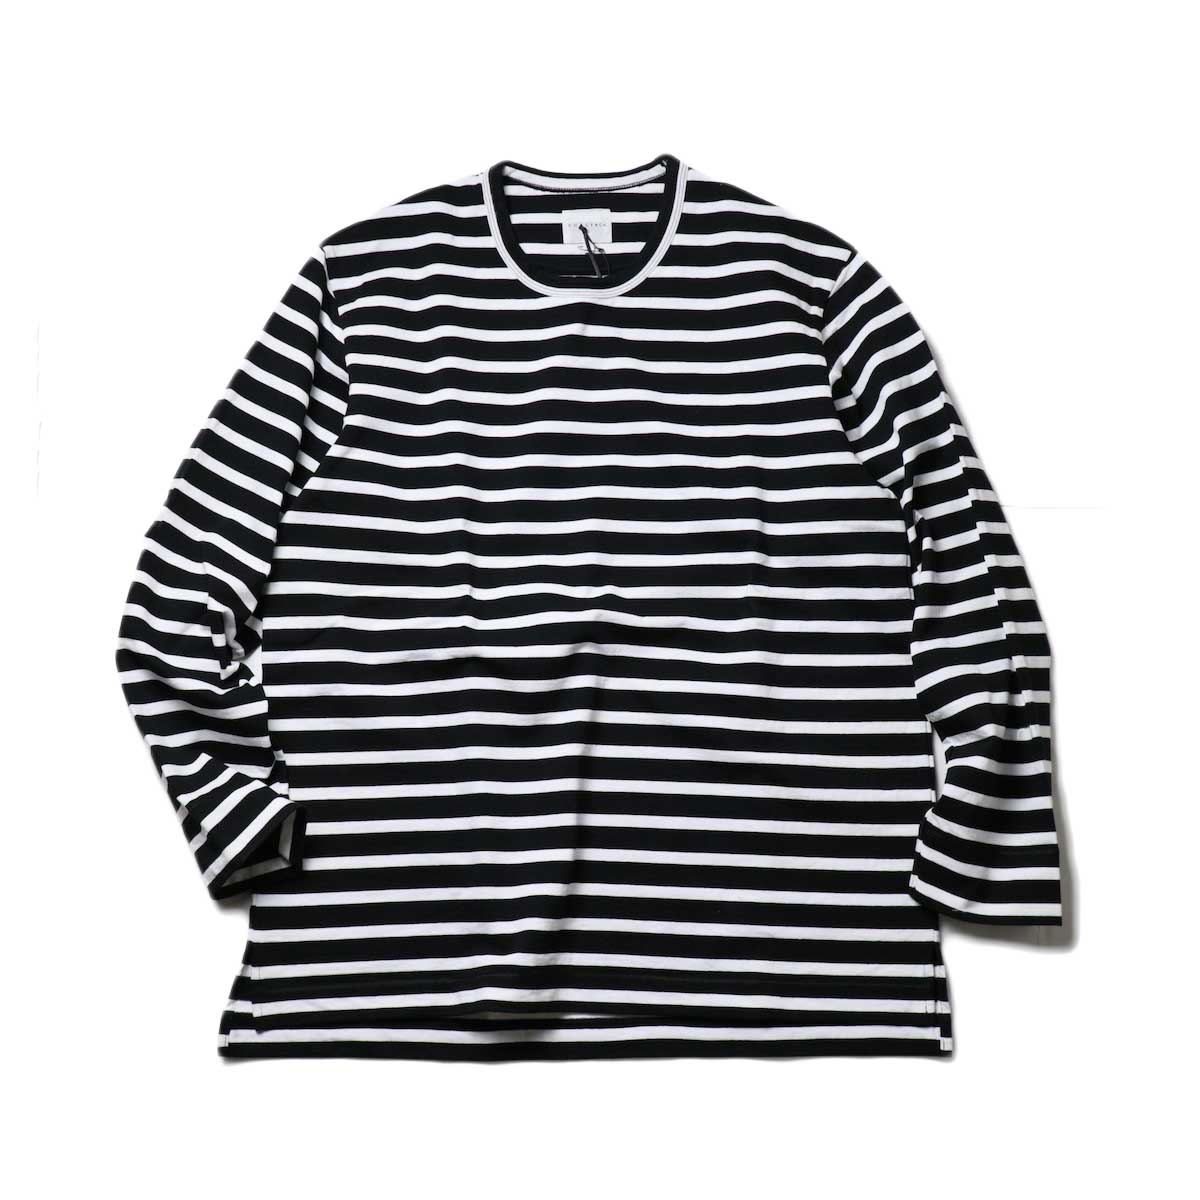 CURLY / SALFORD L/S BORDER TEE (Black / White)正面